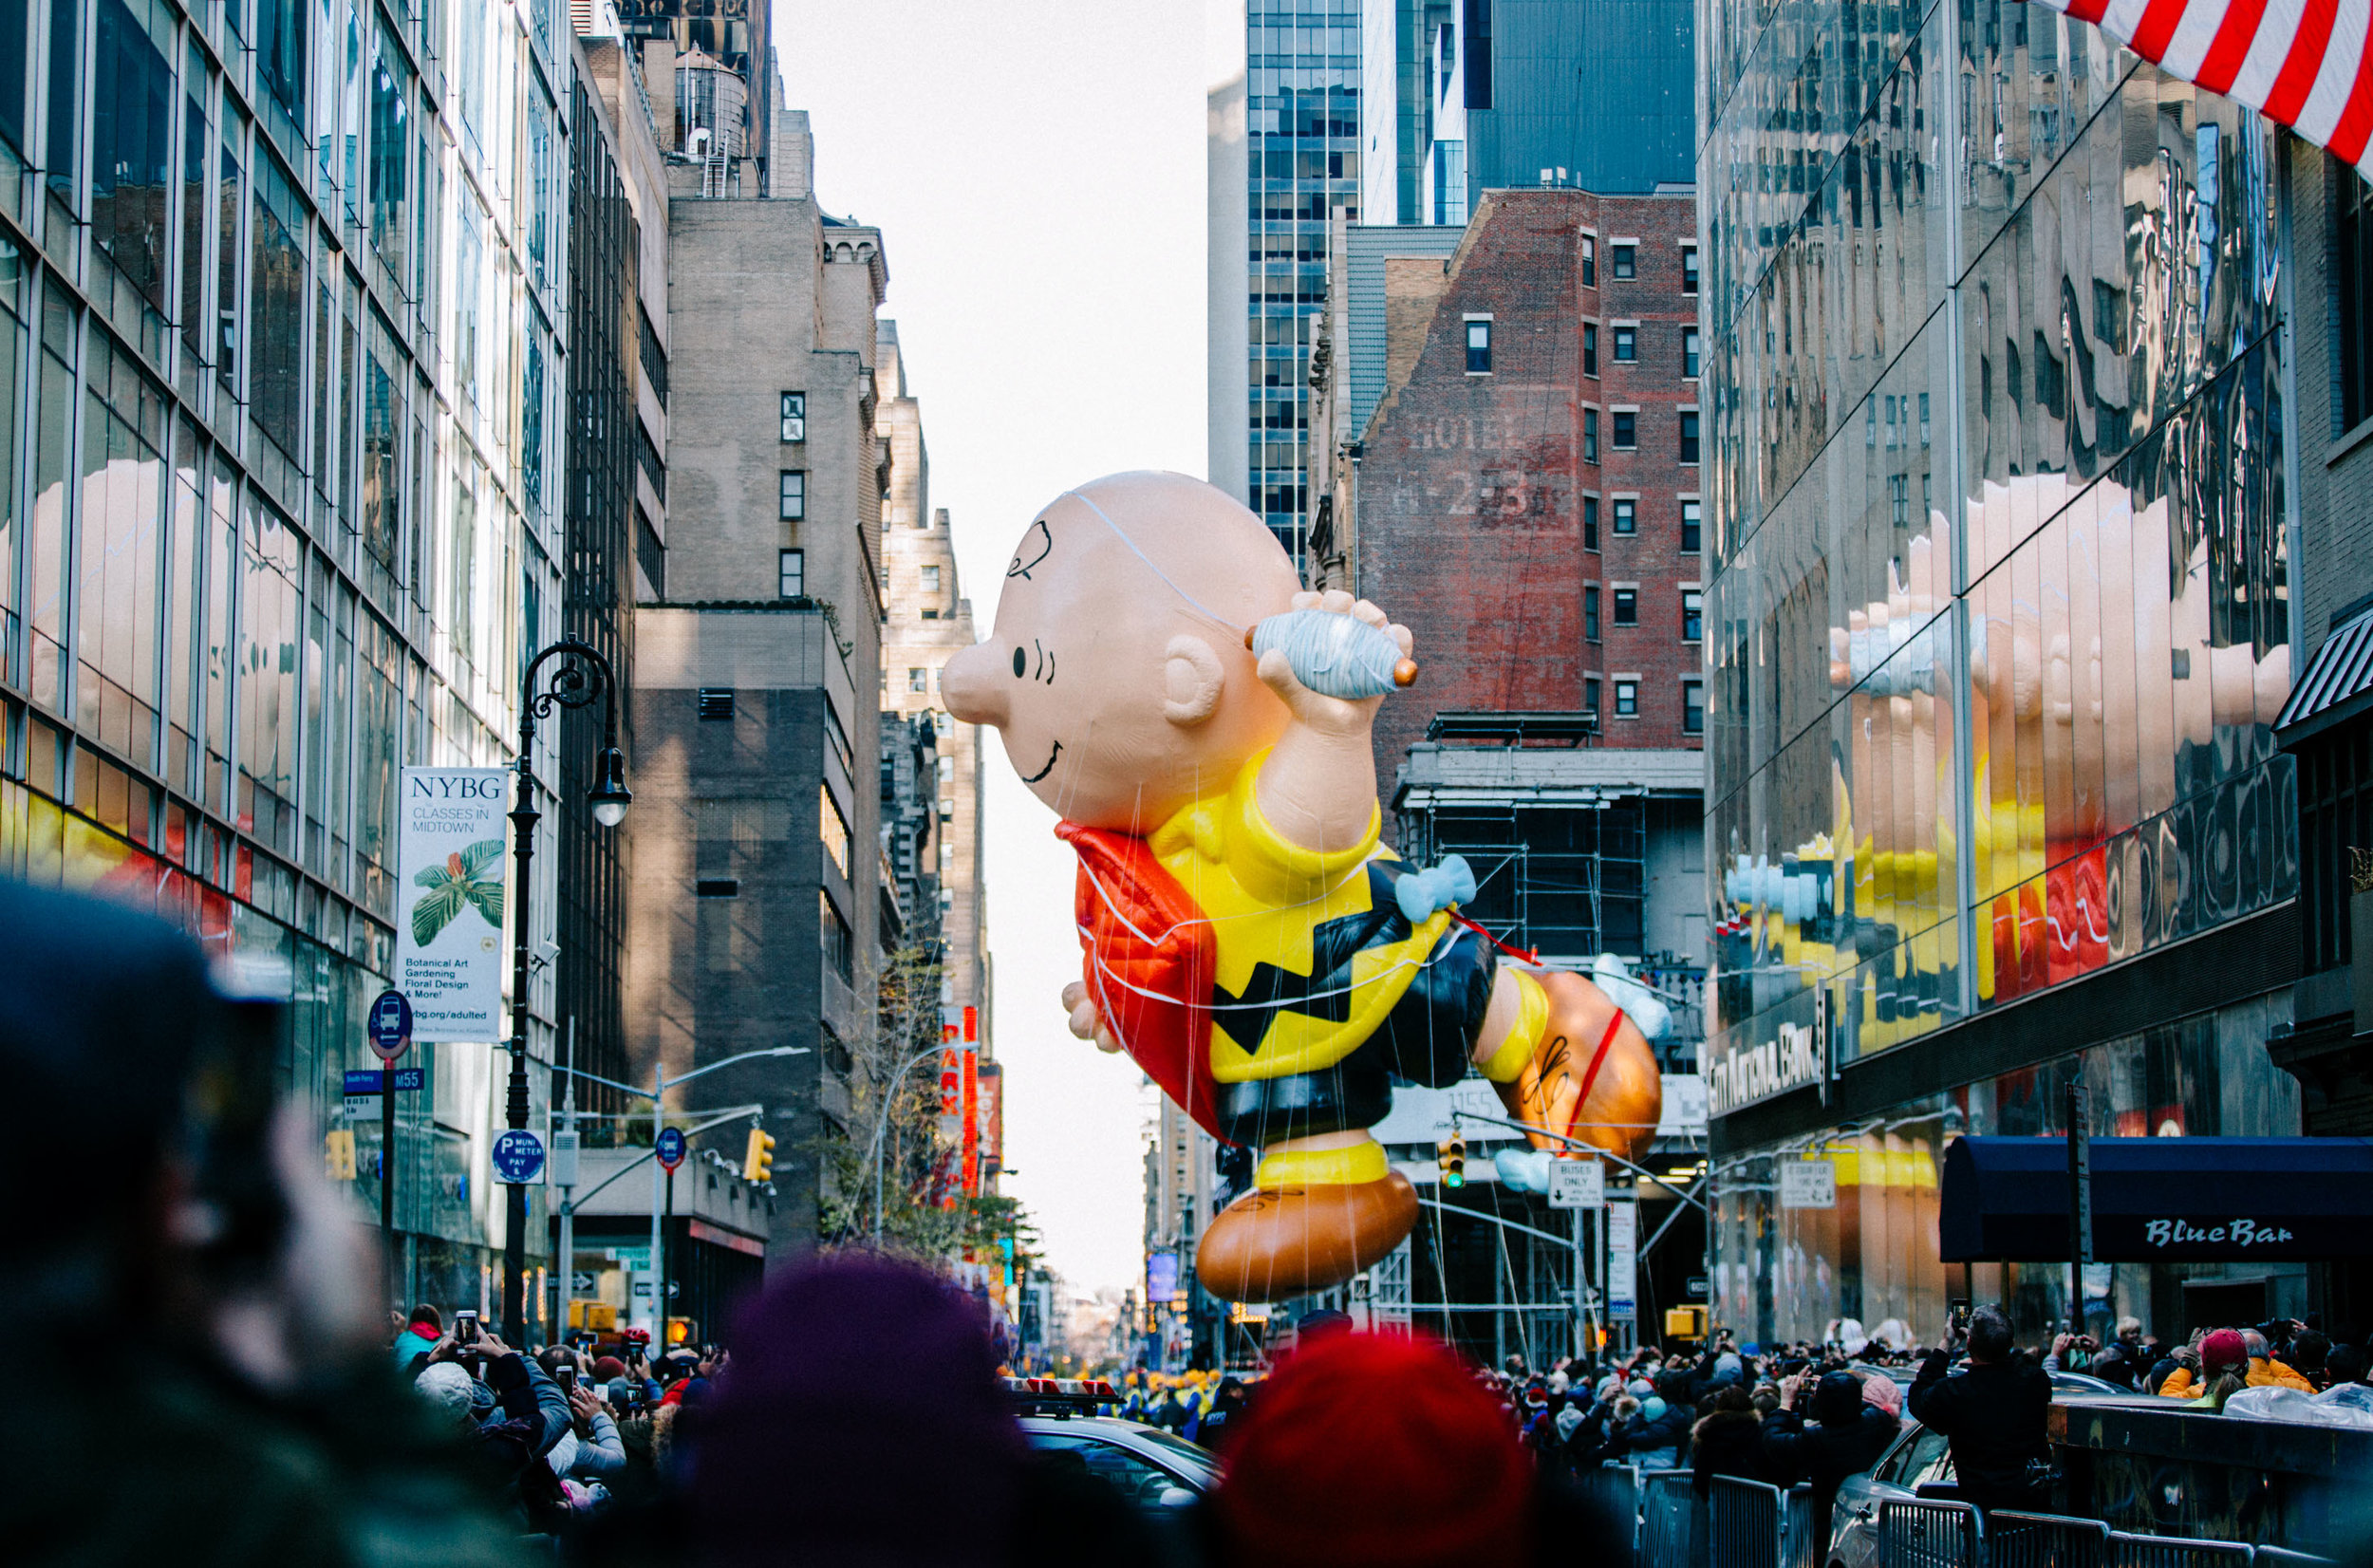 Onlookers watch as the Charlie Brown float glides past the Manhattan skyscrapers during the Macy's Thanksgiving Day Parade. New York, USA.. 23rd Nov 2017